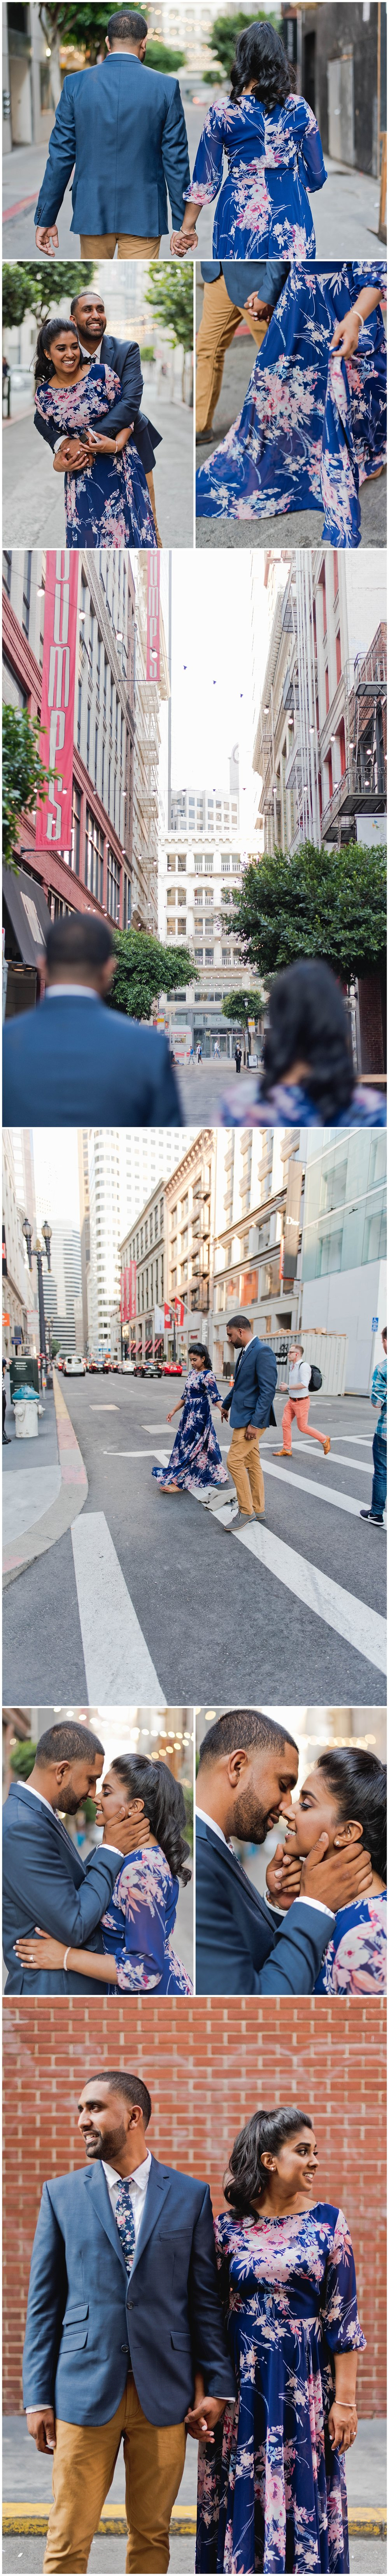 Maiden_Lane_San_Francisco_Romantic_engagement.jpg